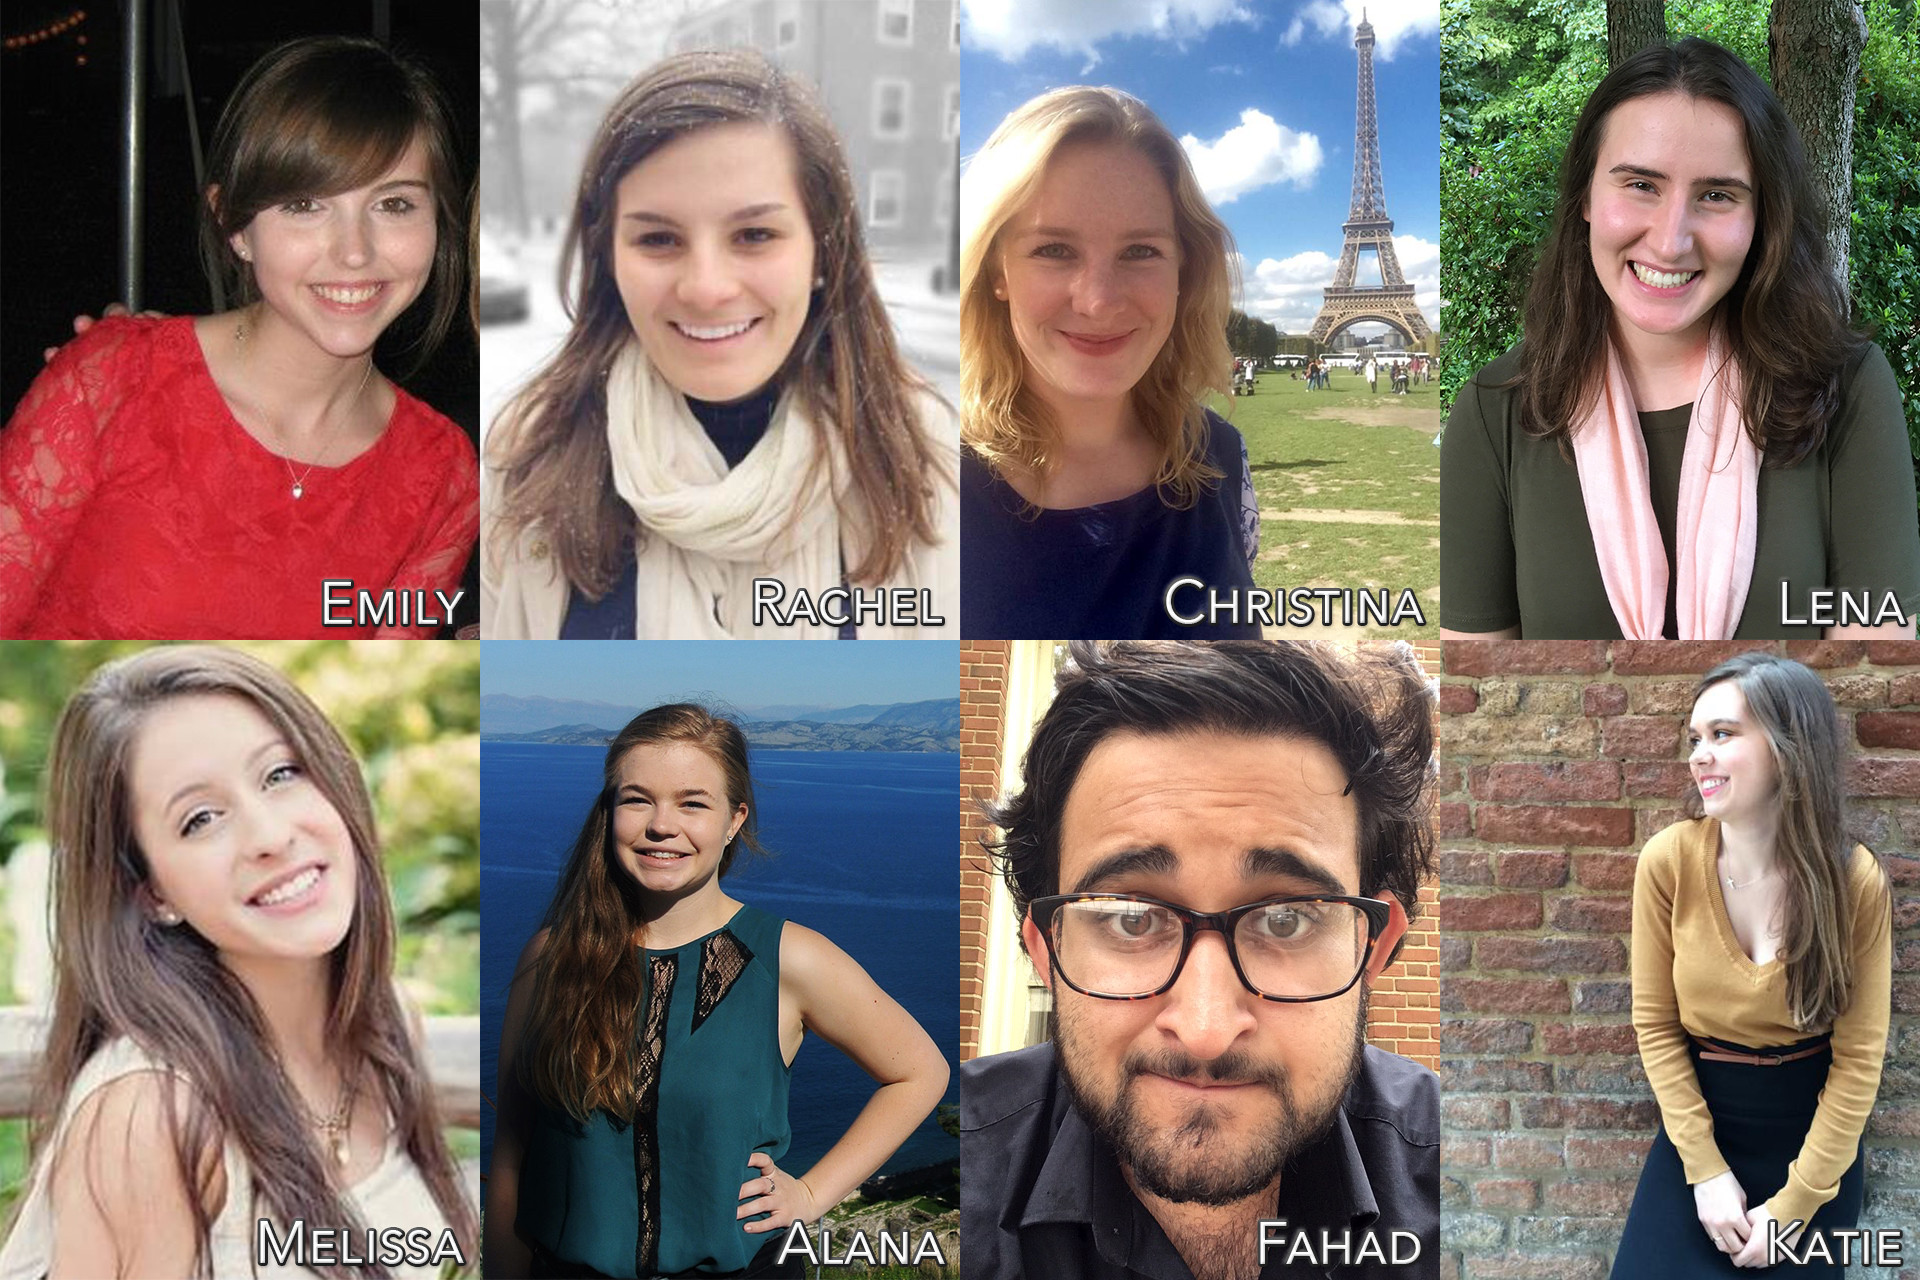 WFU Press interns for Fall 2016